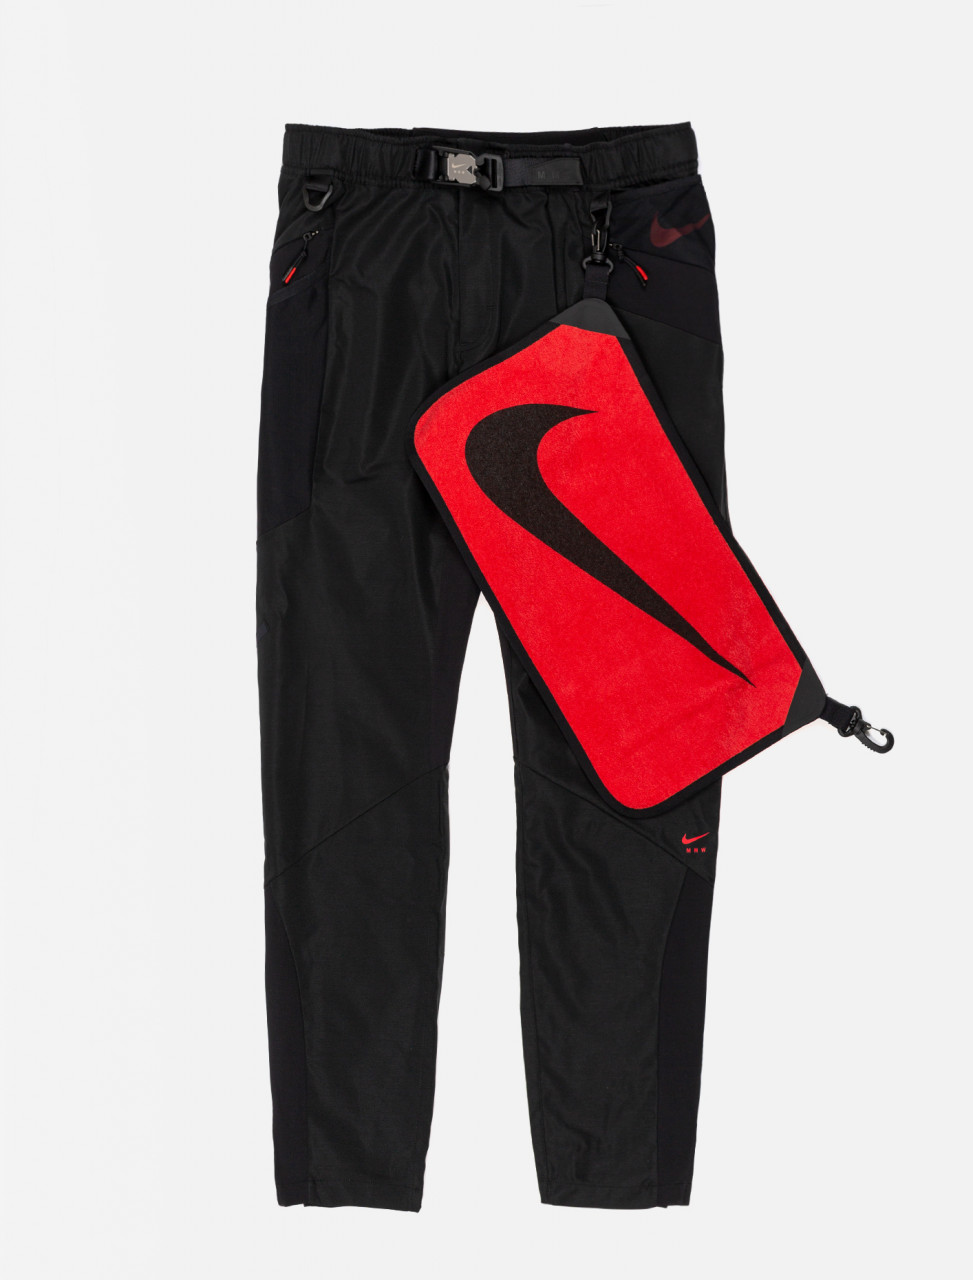 x MMW Trouser in Black